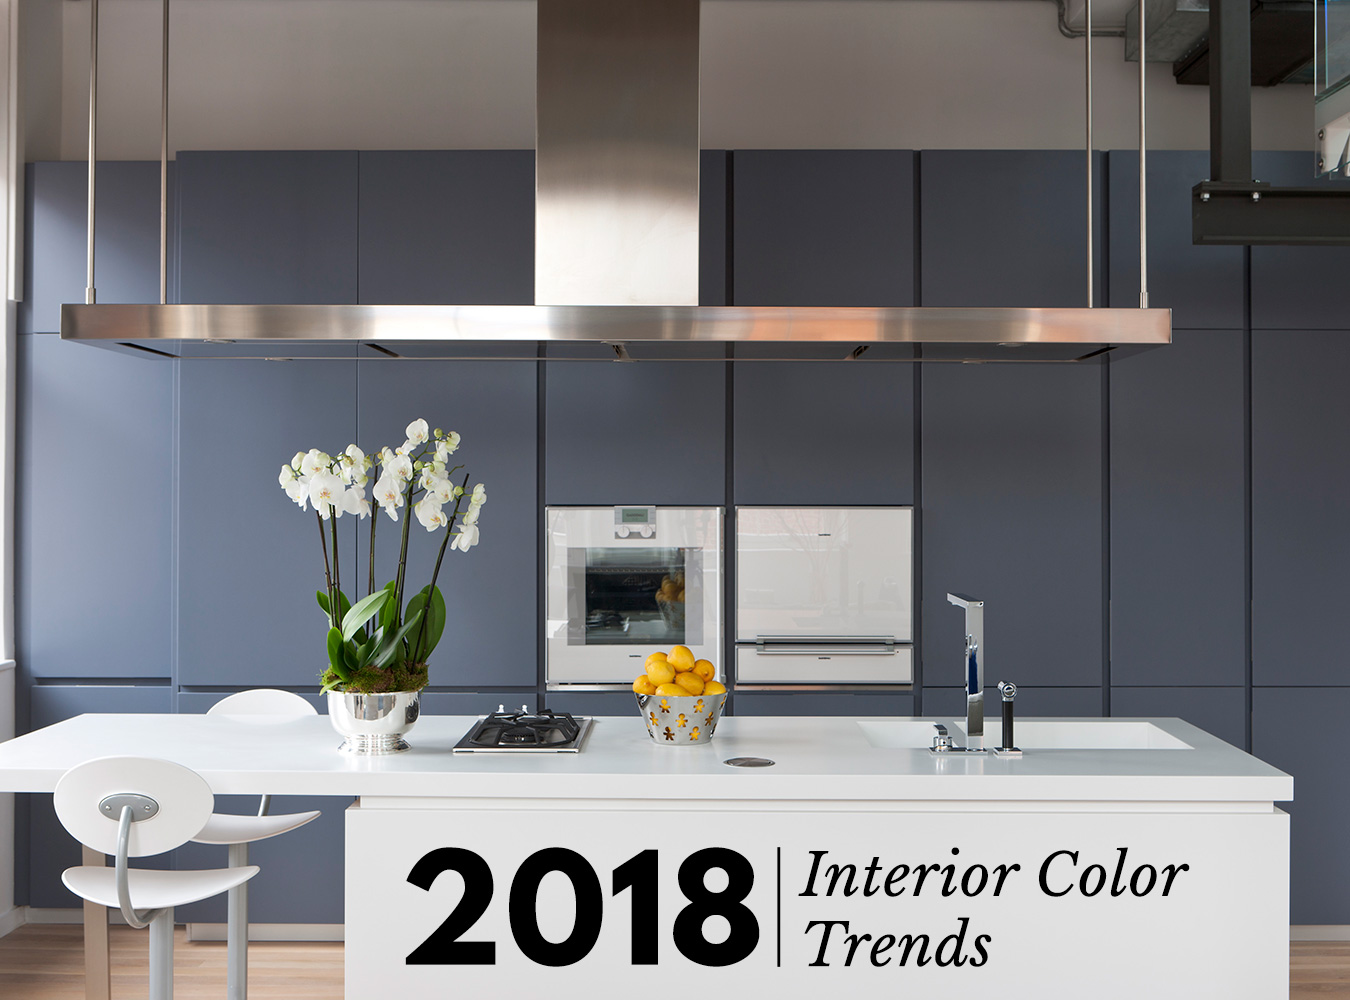 Superbe 2018 Interior Color Trends For Every Room In The Home